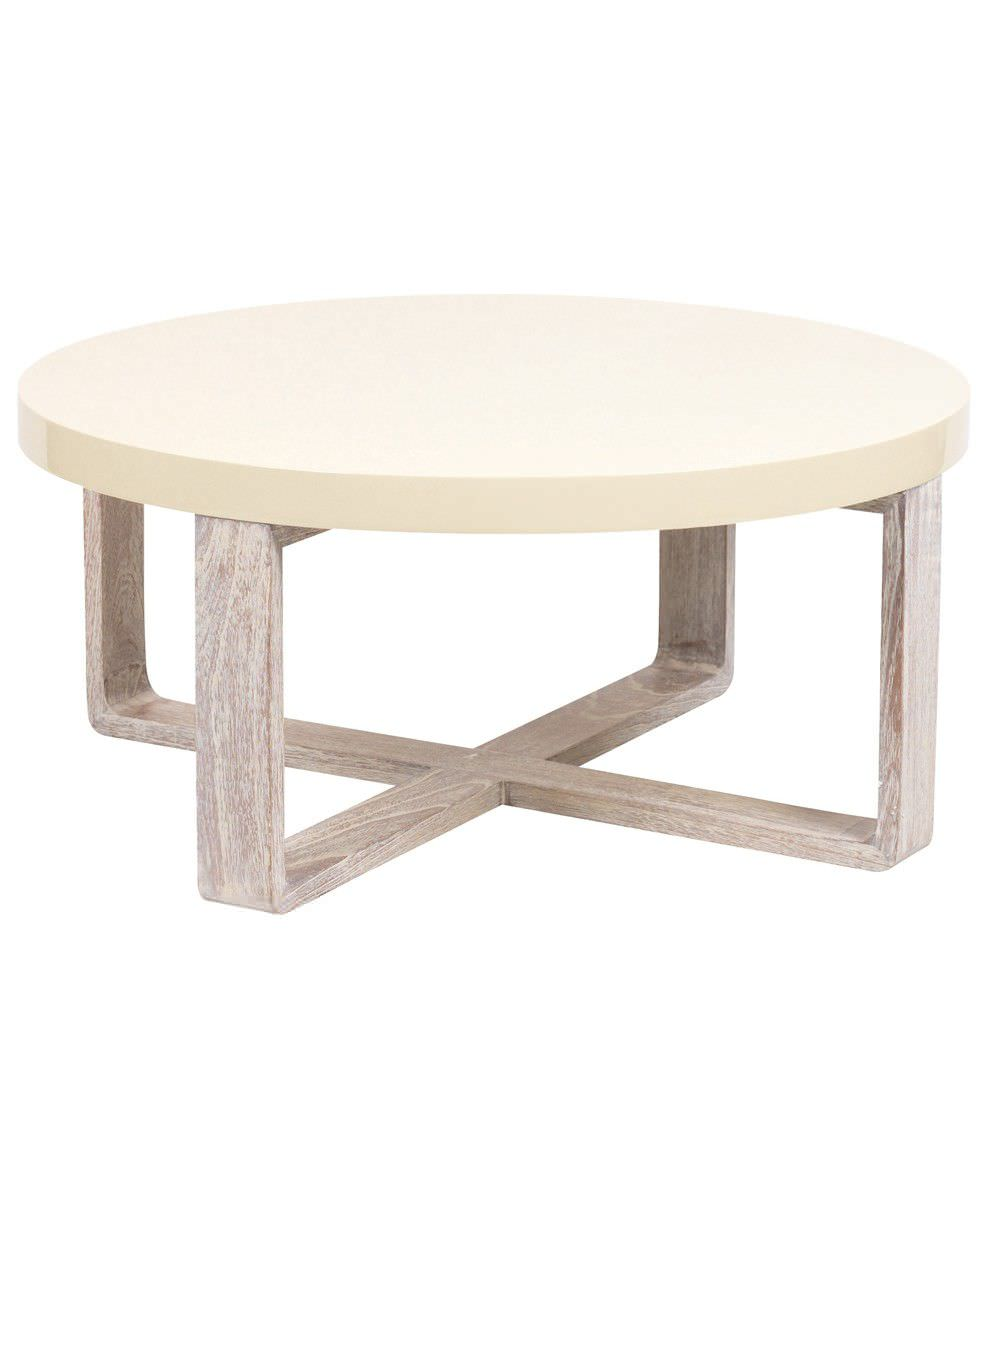 Tables Basses Rondes De Salon Table Salon Ronde Table Basse Ronde Originale Home D Cor Tables